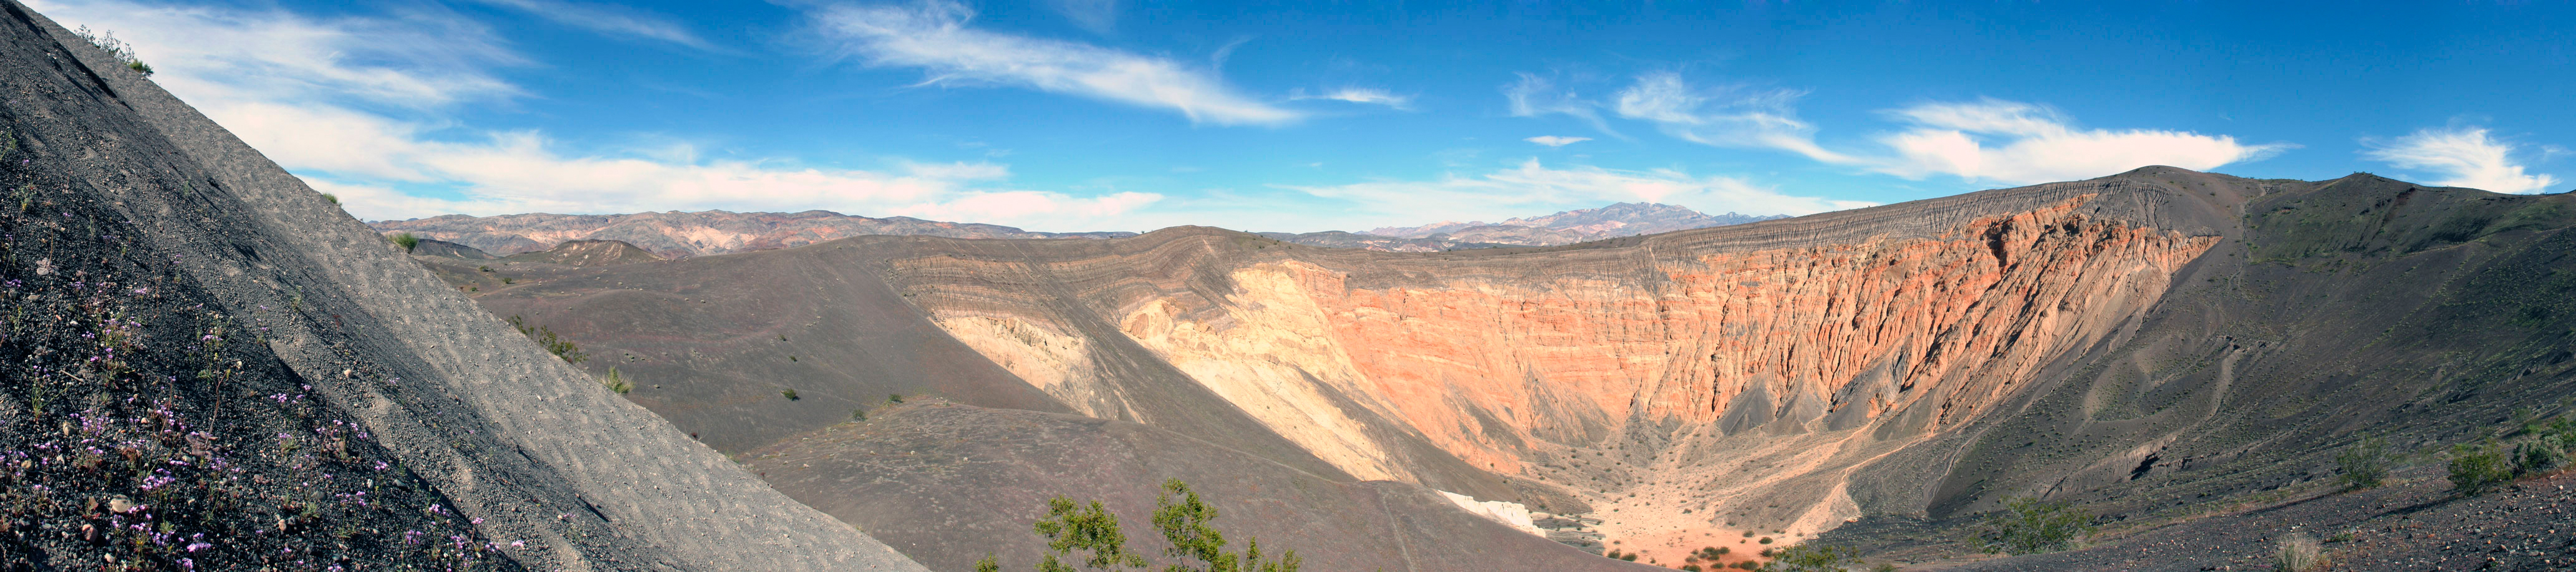 """This is Ubehebe Crater, proof that Death Valley did indeed have volcanic activity at one time and is not just a big stretch mark on the Earth.  This is a """"created"""" photo, in that it's a carefully taken and assembled series of photos.  In this case, 15 photos are stitched into this one result.  I had to stand here quite a bit to get this without any people in it.  Remember, we're in a National Park now, that's experiencing what is perhaps a once in a lifetime event.  There are LOTS of people here with us including the requisite tour bus of foreign language speakers and tons of irreverent teenagers.  But, you don't see any of them in this photo, do you?"""